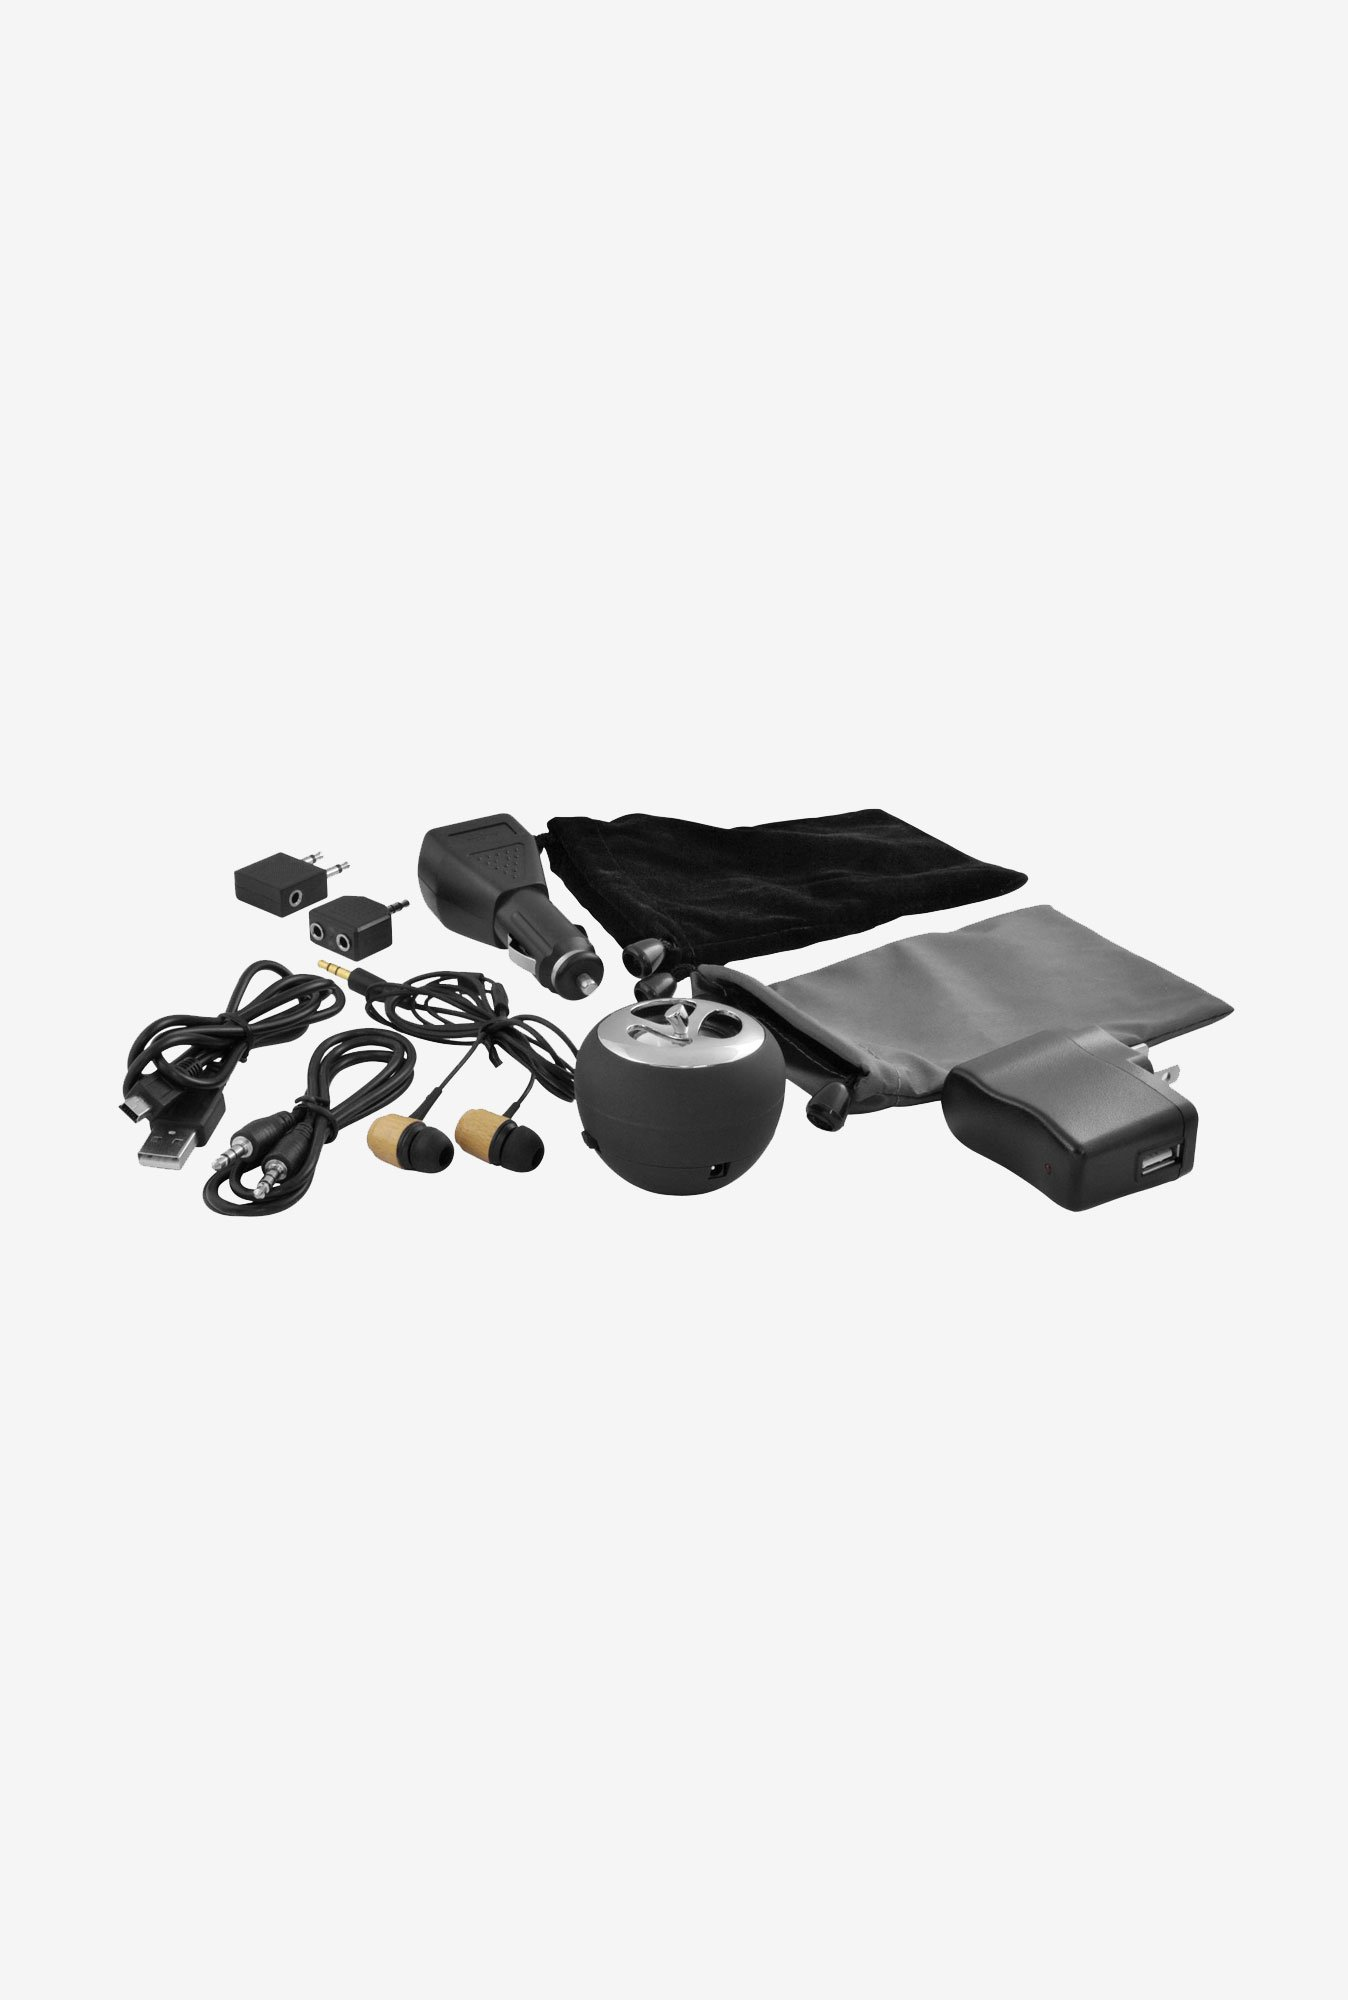 Ematic EI030 Universal MP3 Player Accessory kit (Black)